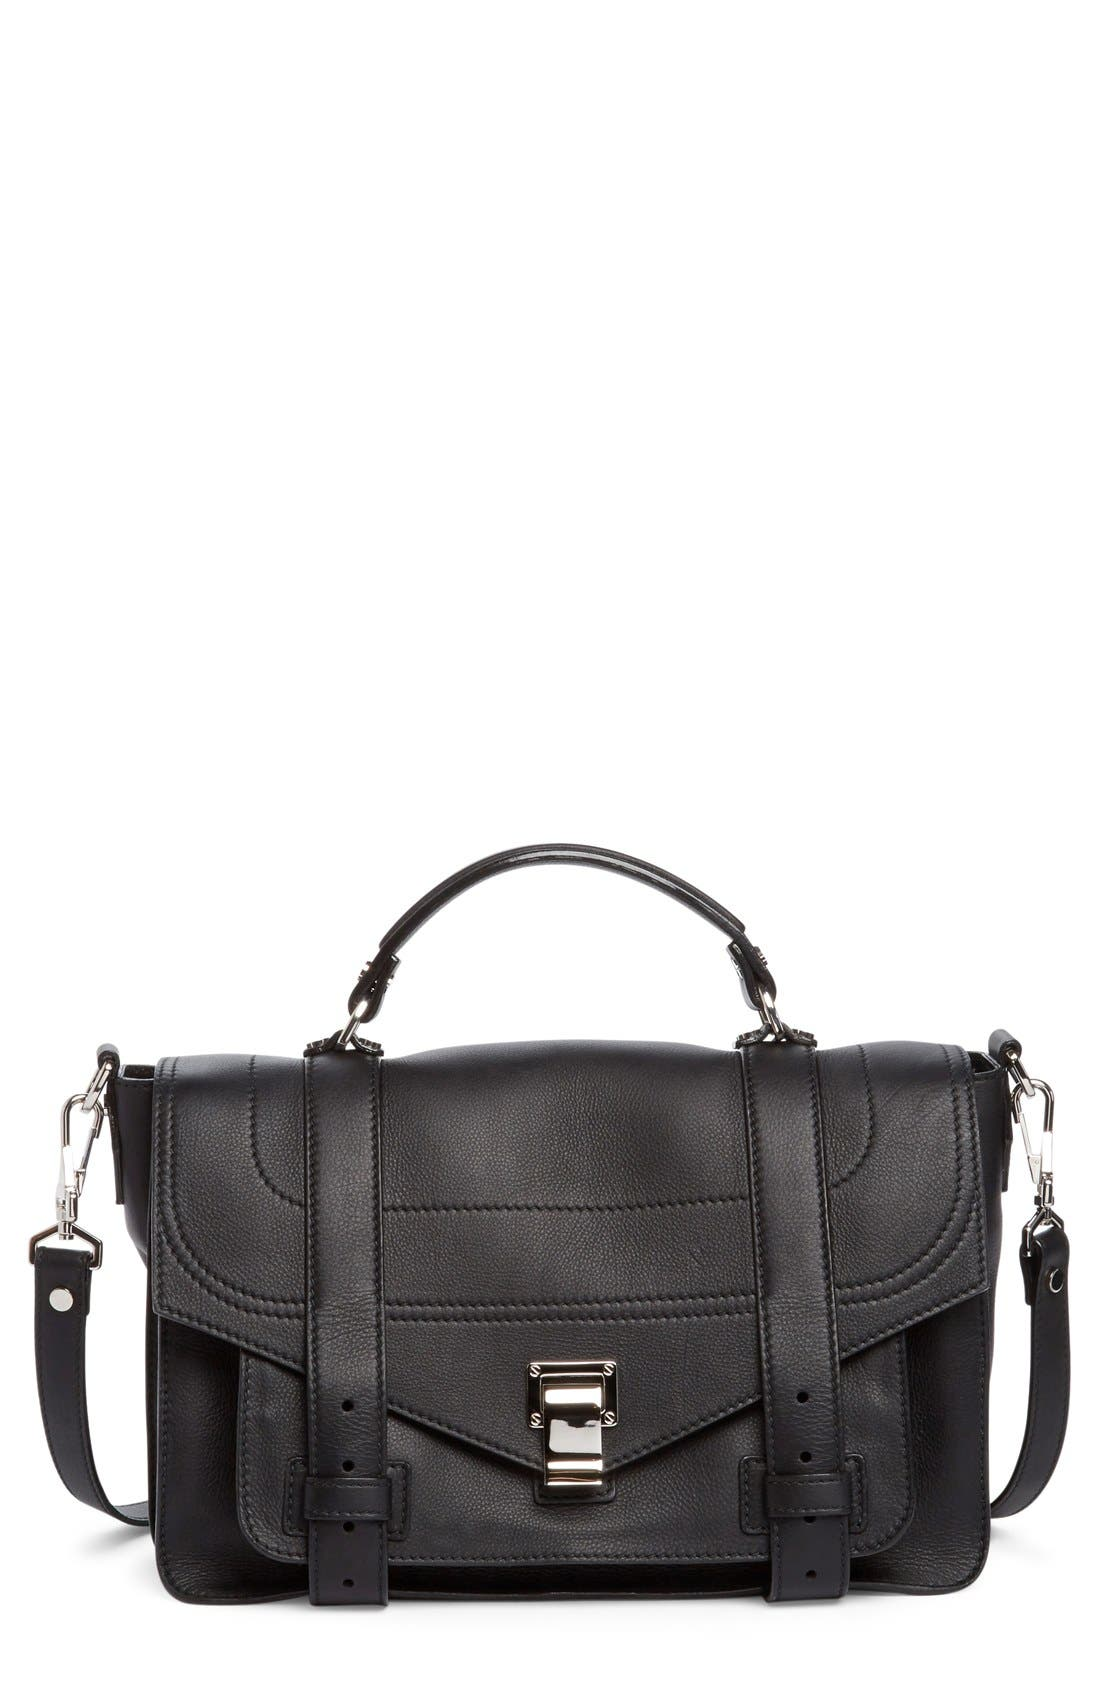 PROENZA SCHOULER Medium PS1+ Grainy Leather Satchel